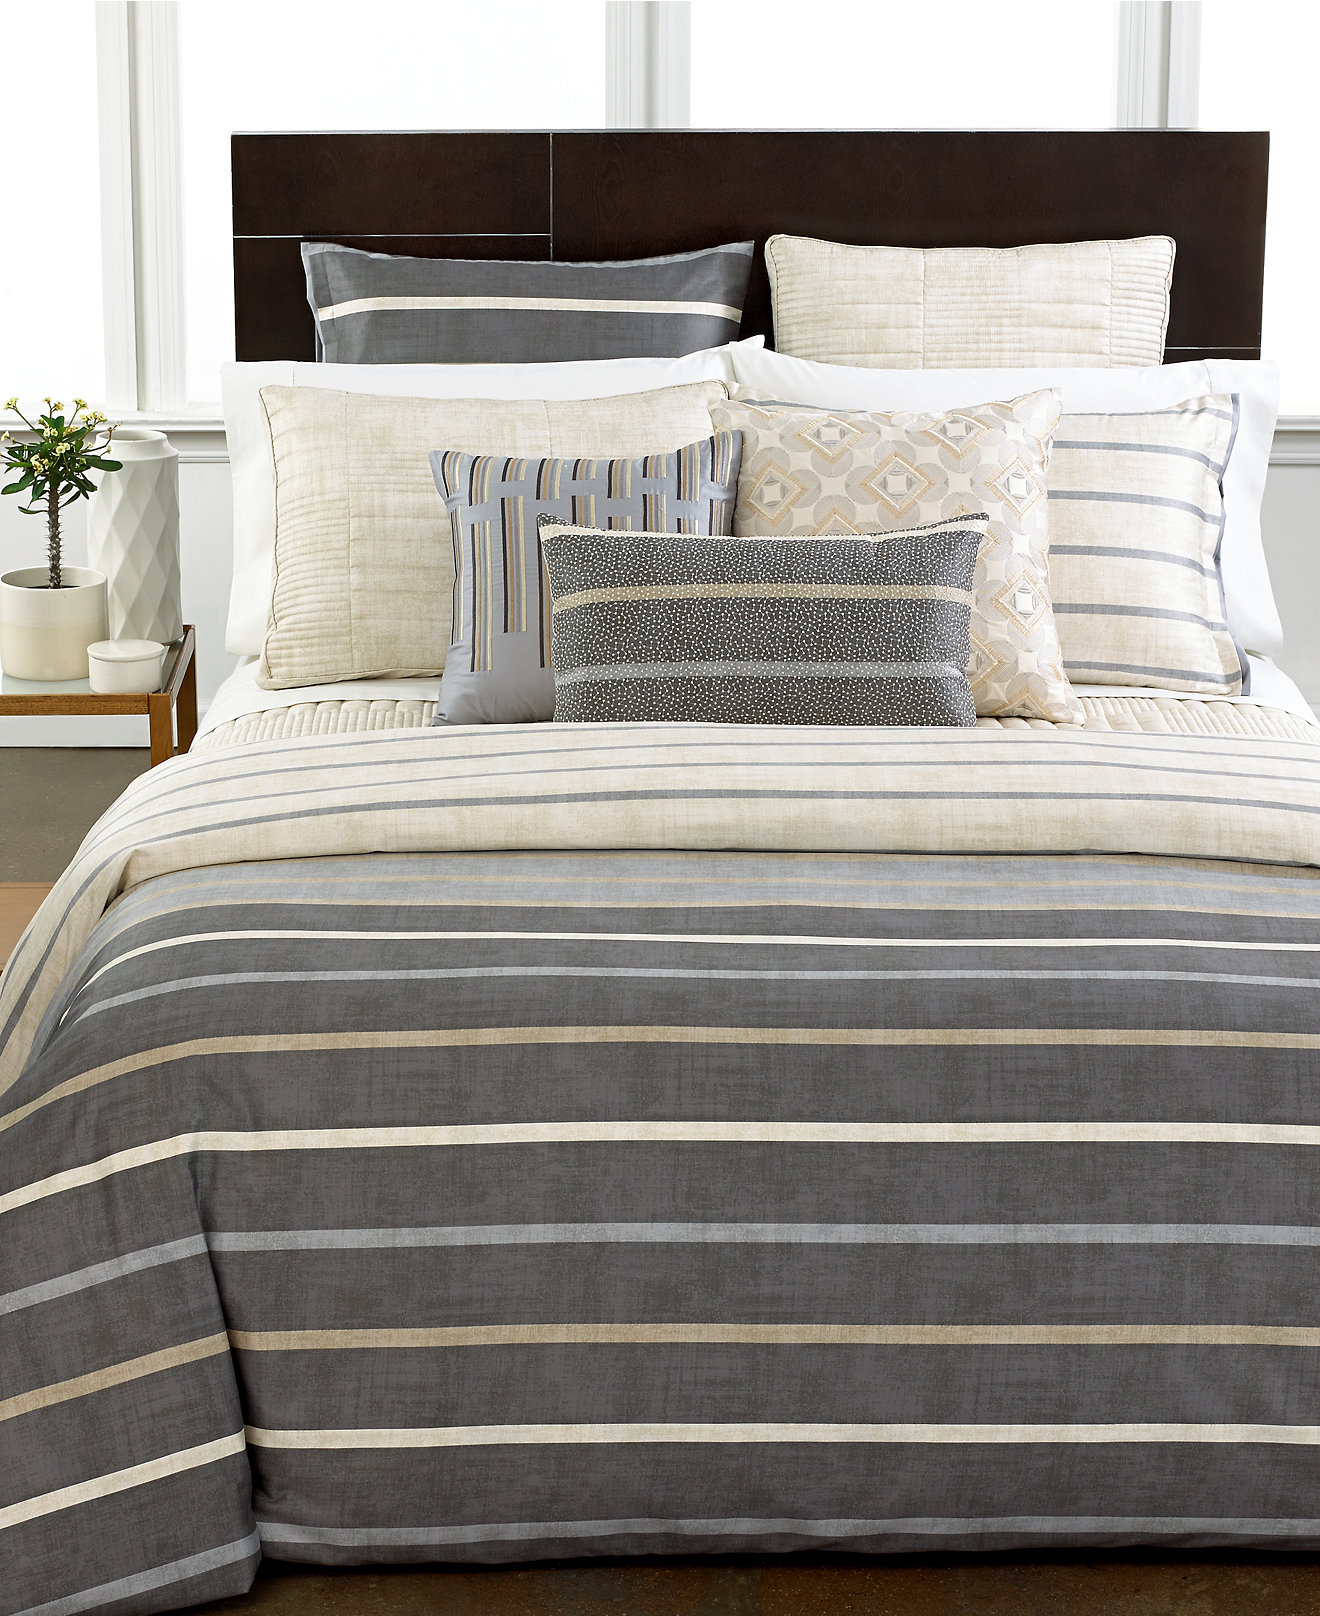 duvet covers  macy's - hotel collection modern colonnade duvet covers created for macy's